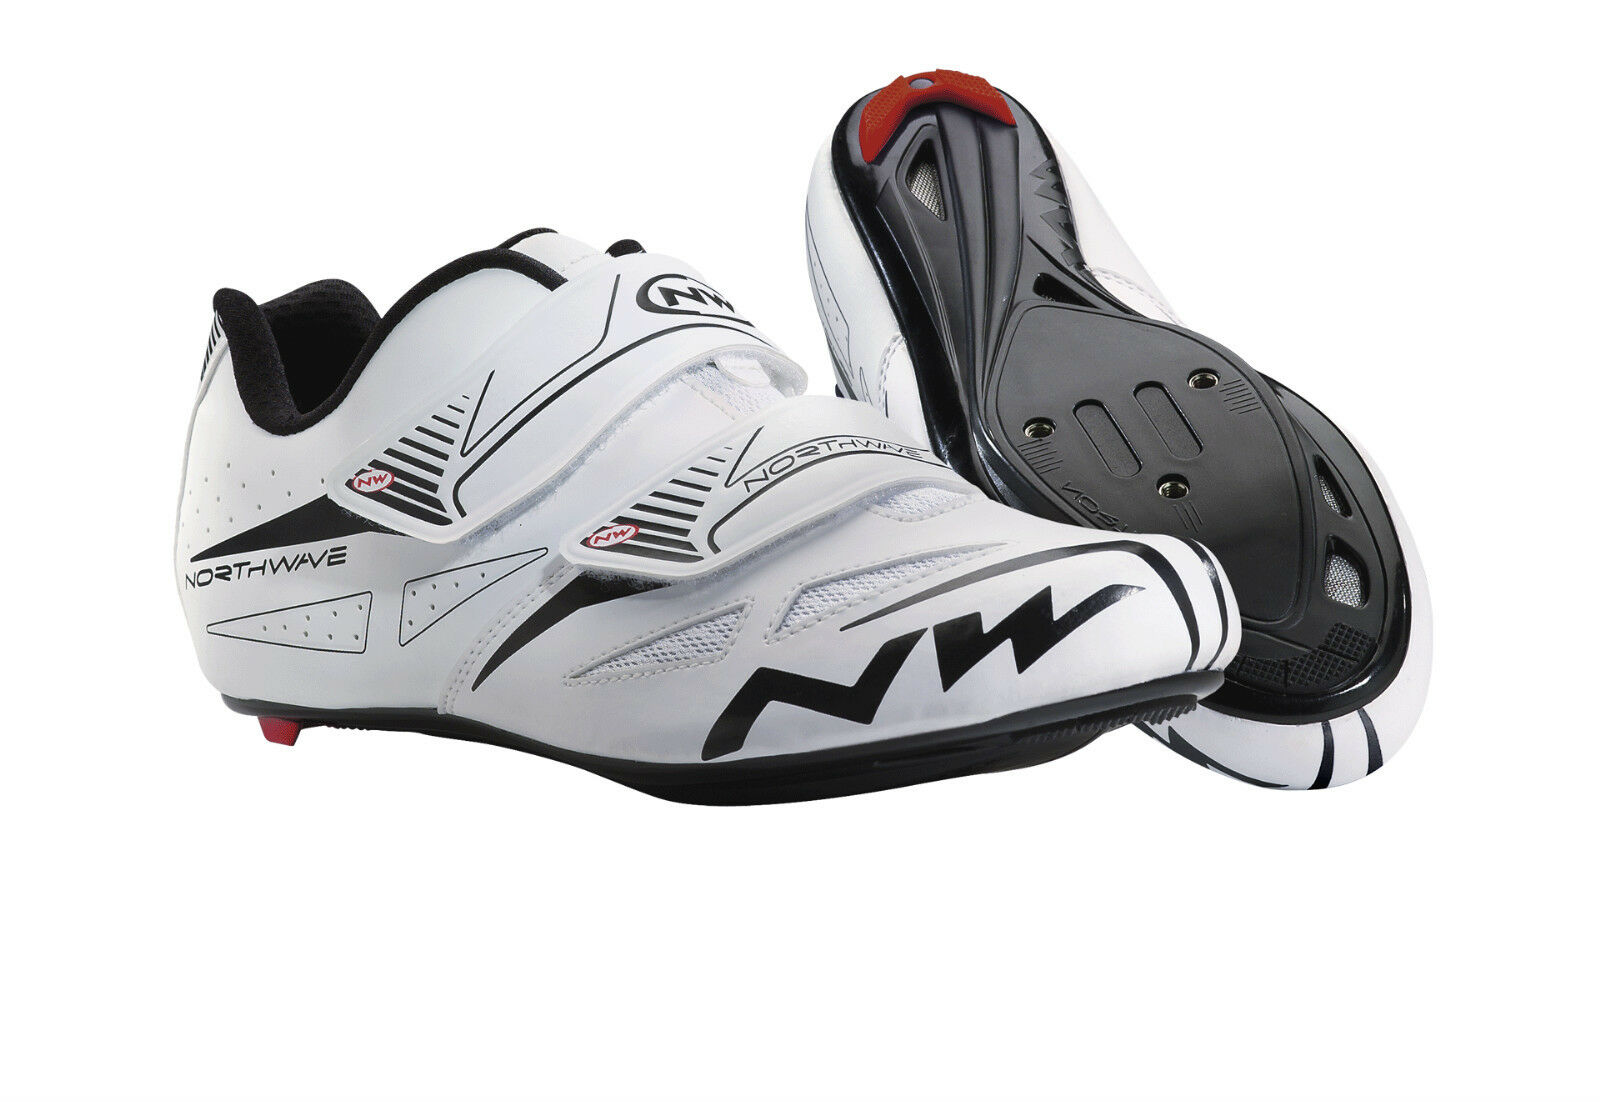 shoes NORTHWAVE CORSA JET EVO White ROAD SHOES NORTHWAVE JET EVO WHITE